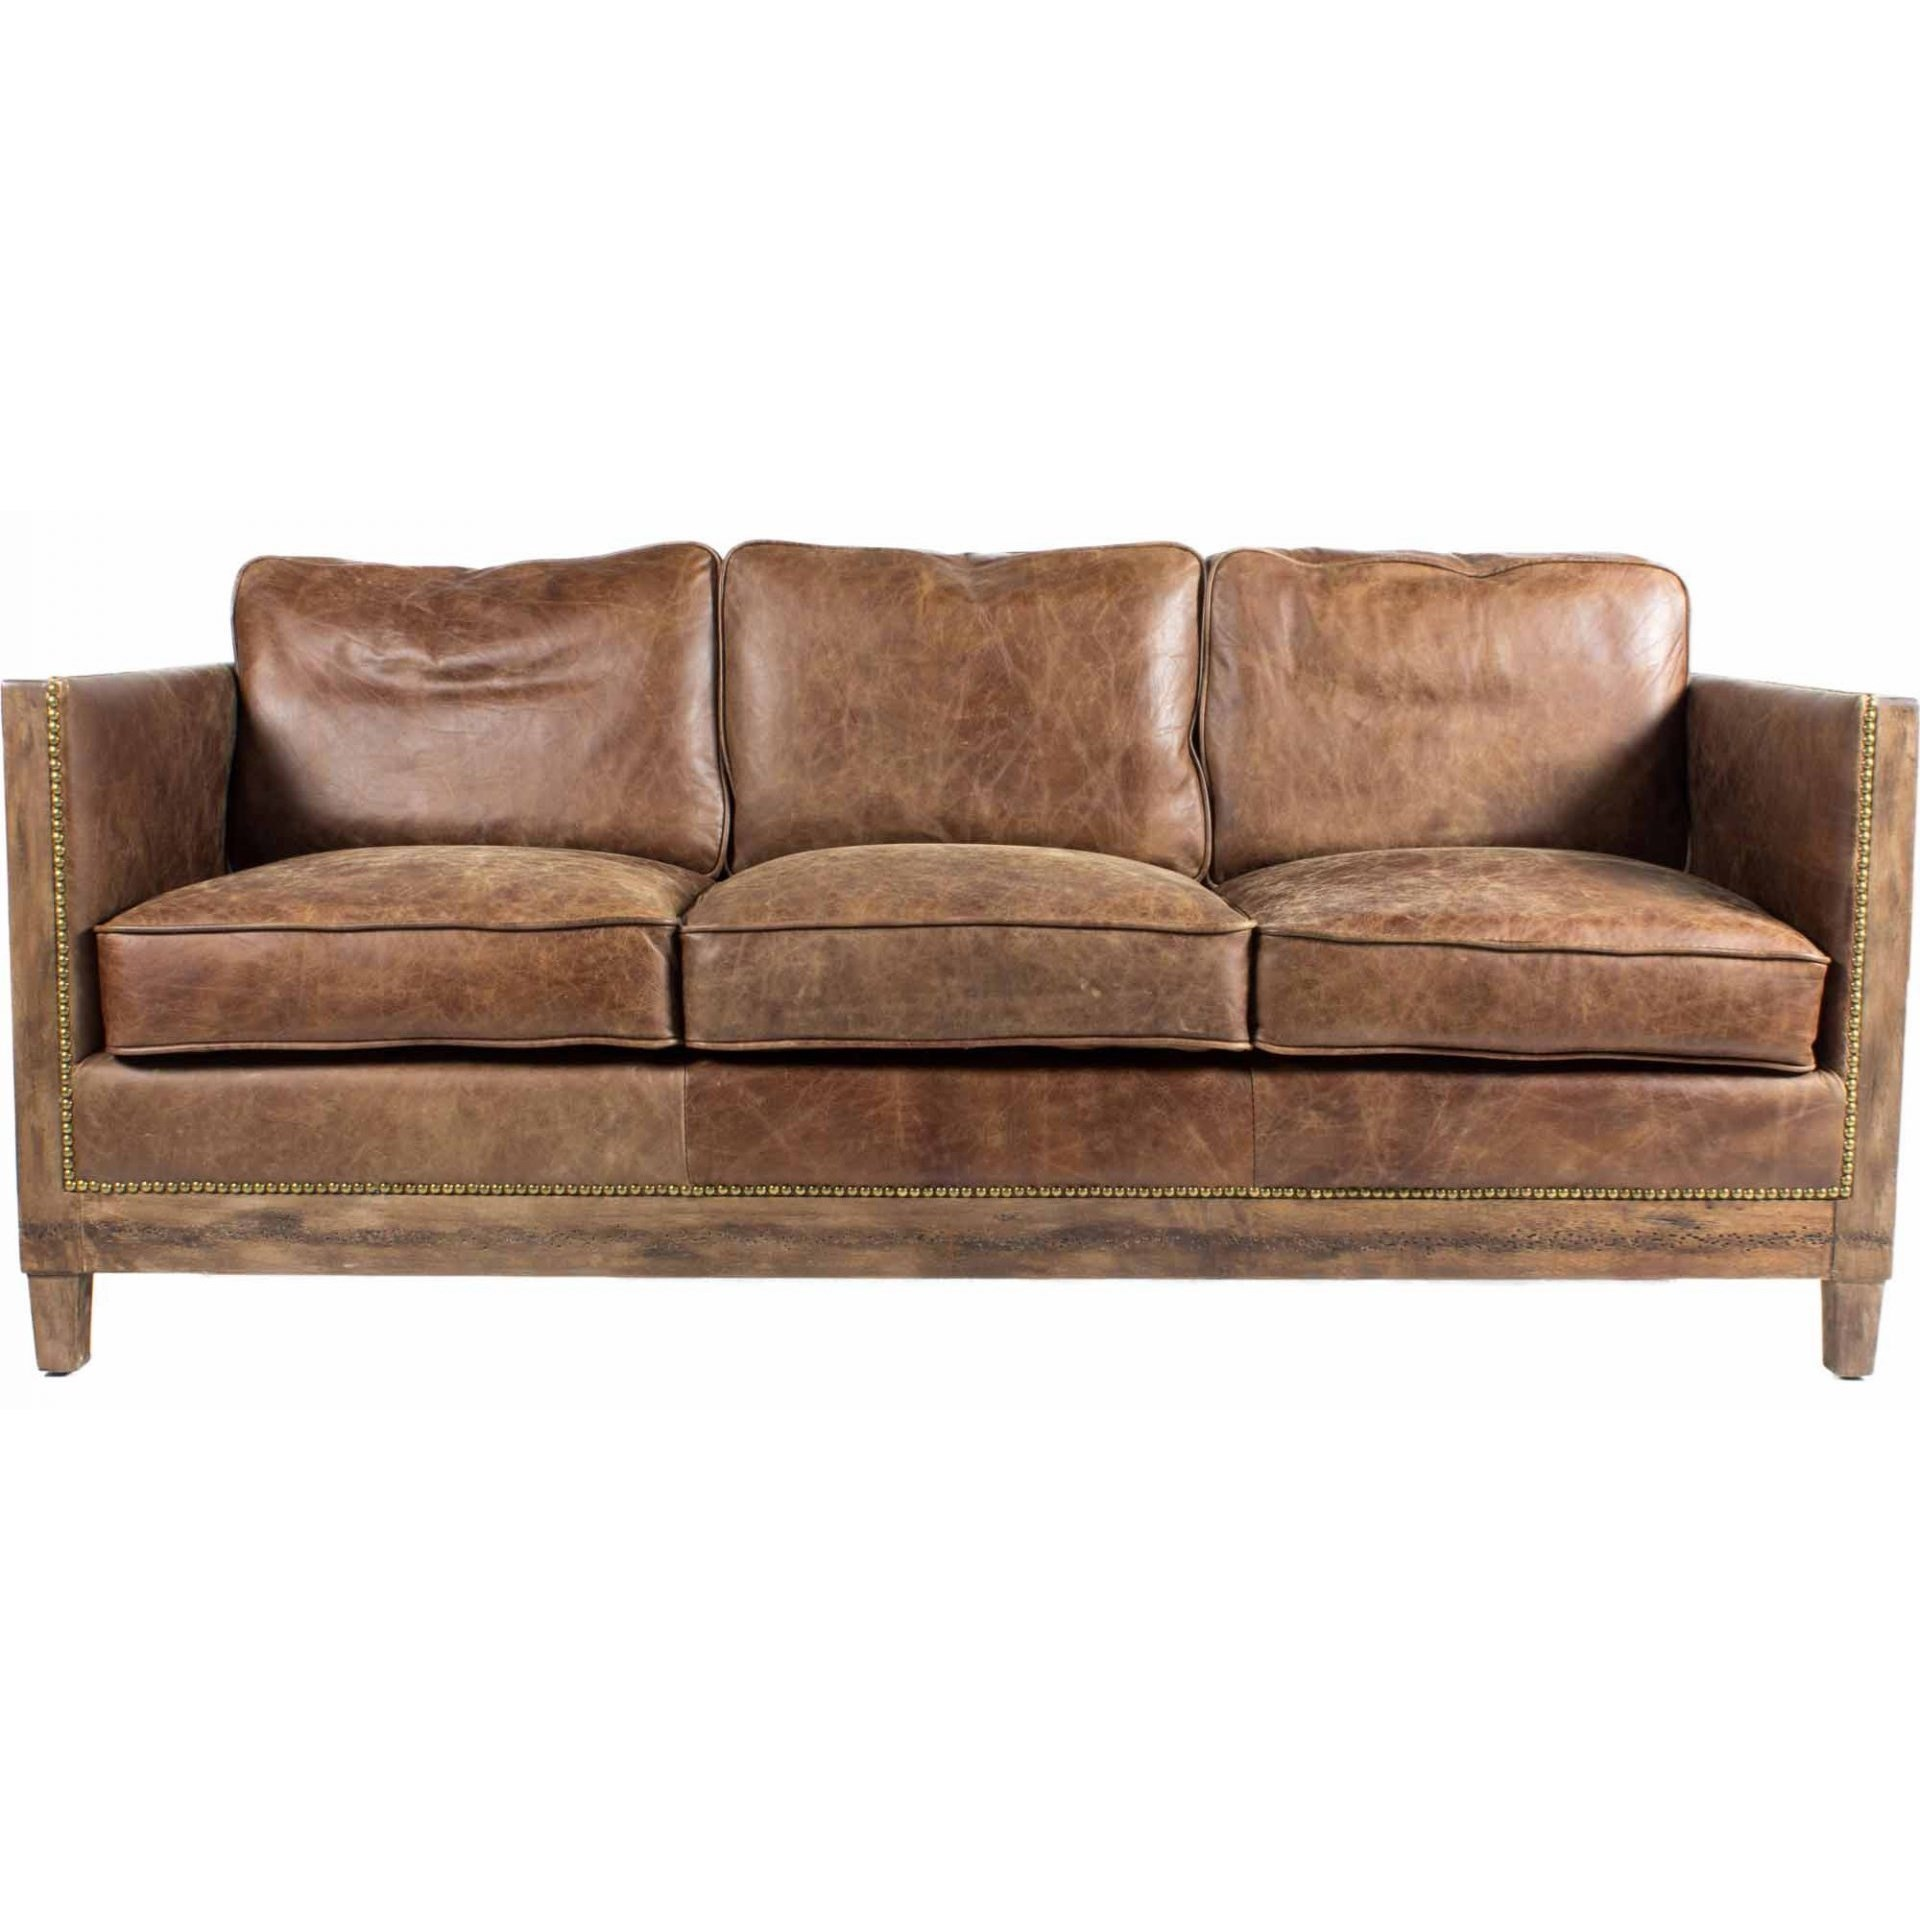 wood frame leather sofas ashley furniture kinlock charcoal sofa moe s home collection darlington with exposed